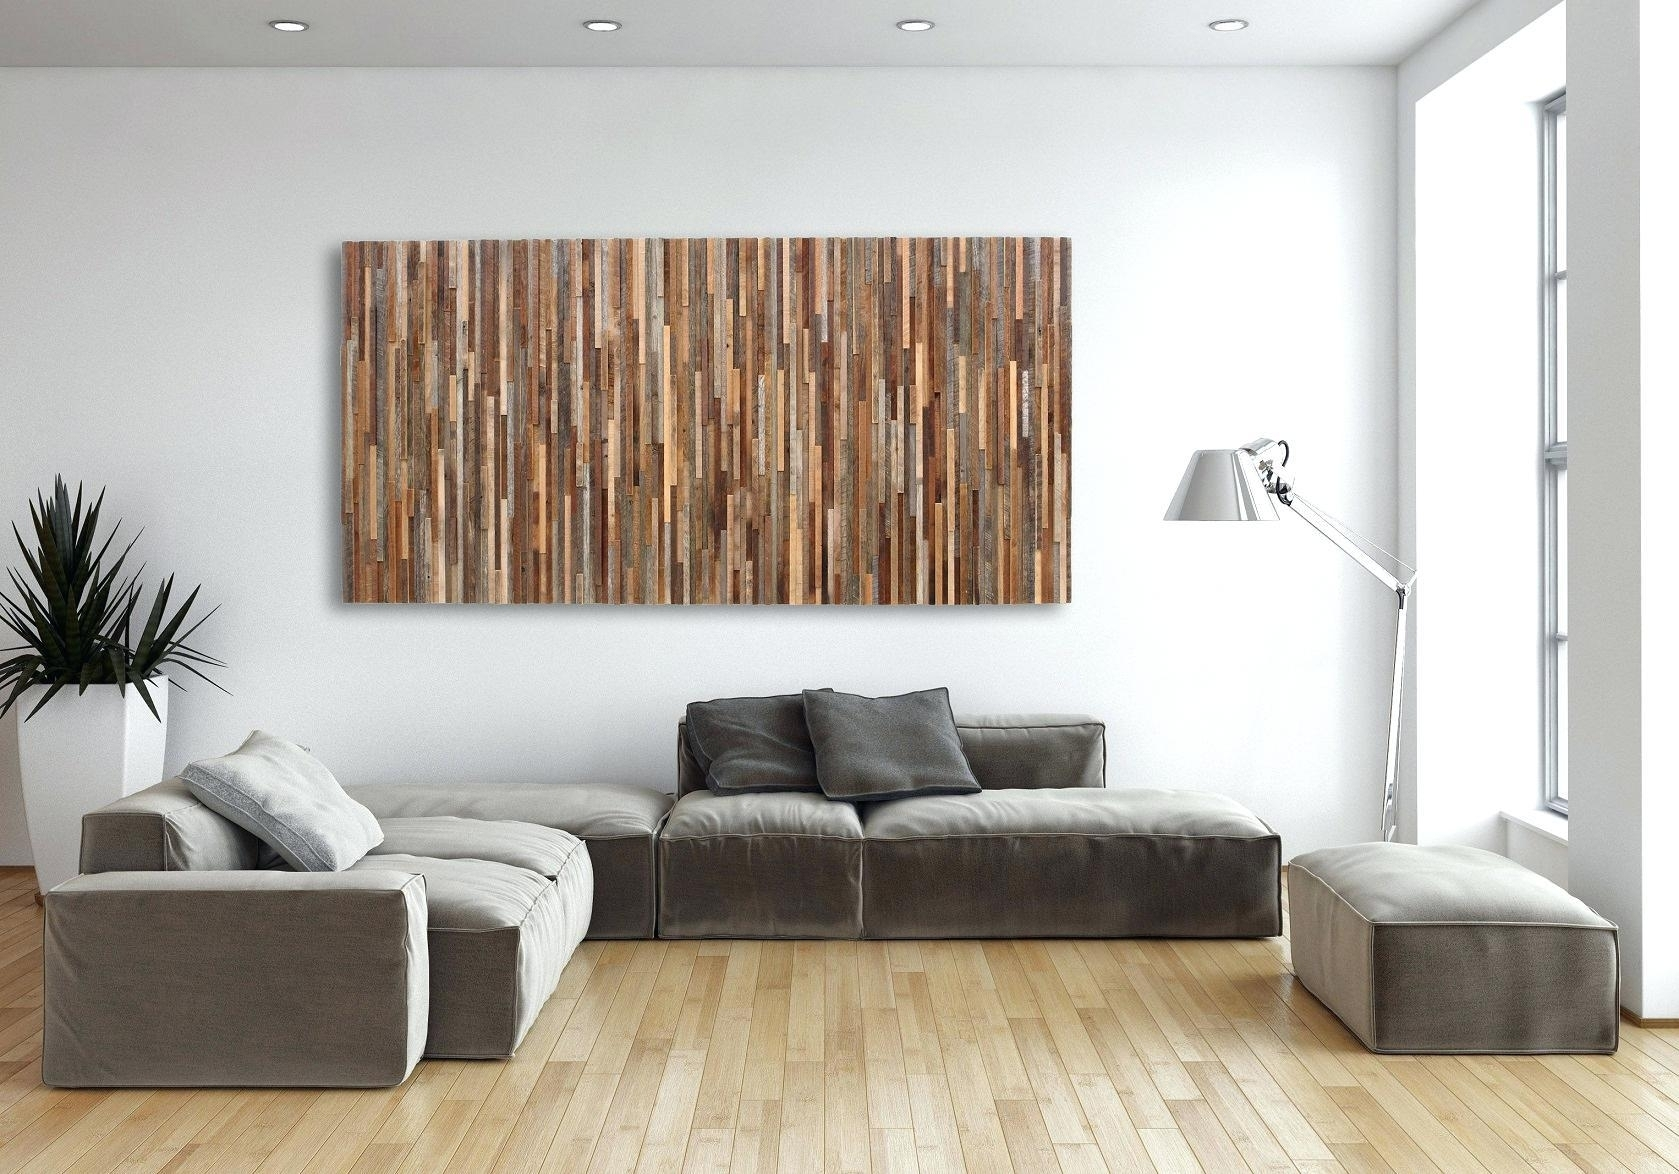 20 Collection Of Extra Large Framed Wall Art Wall Art Ideas With Regard To Oversized Wall Art (View 1 of 20)